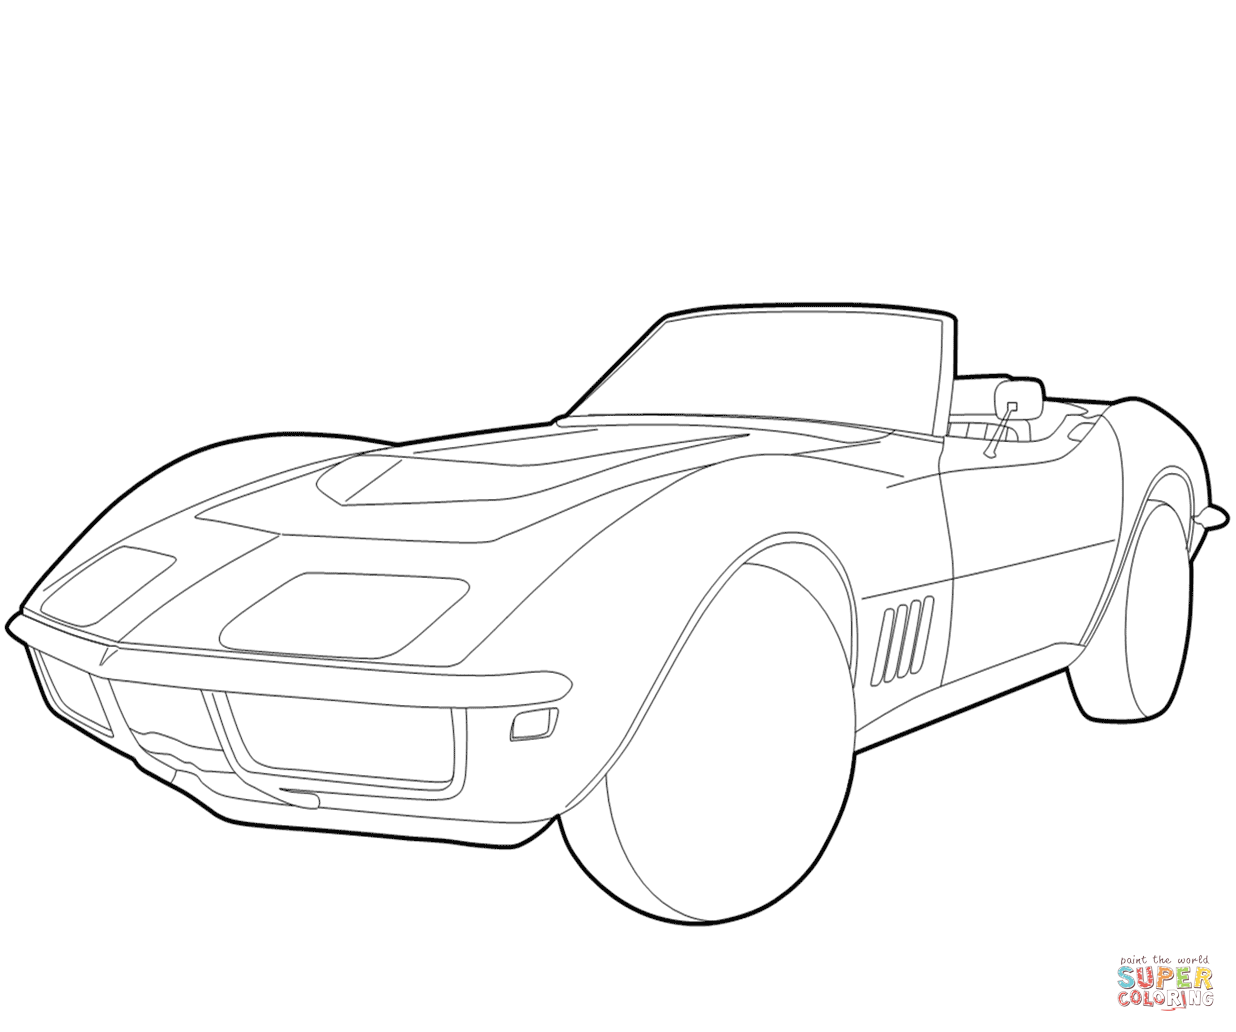 1236x1032 chevrolet corvette coloring page free printable coloring pages